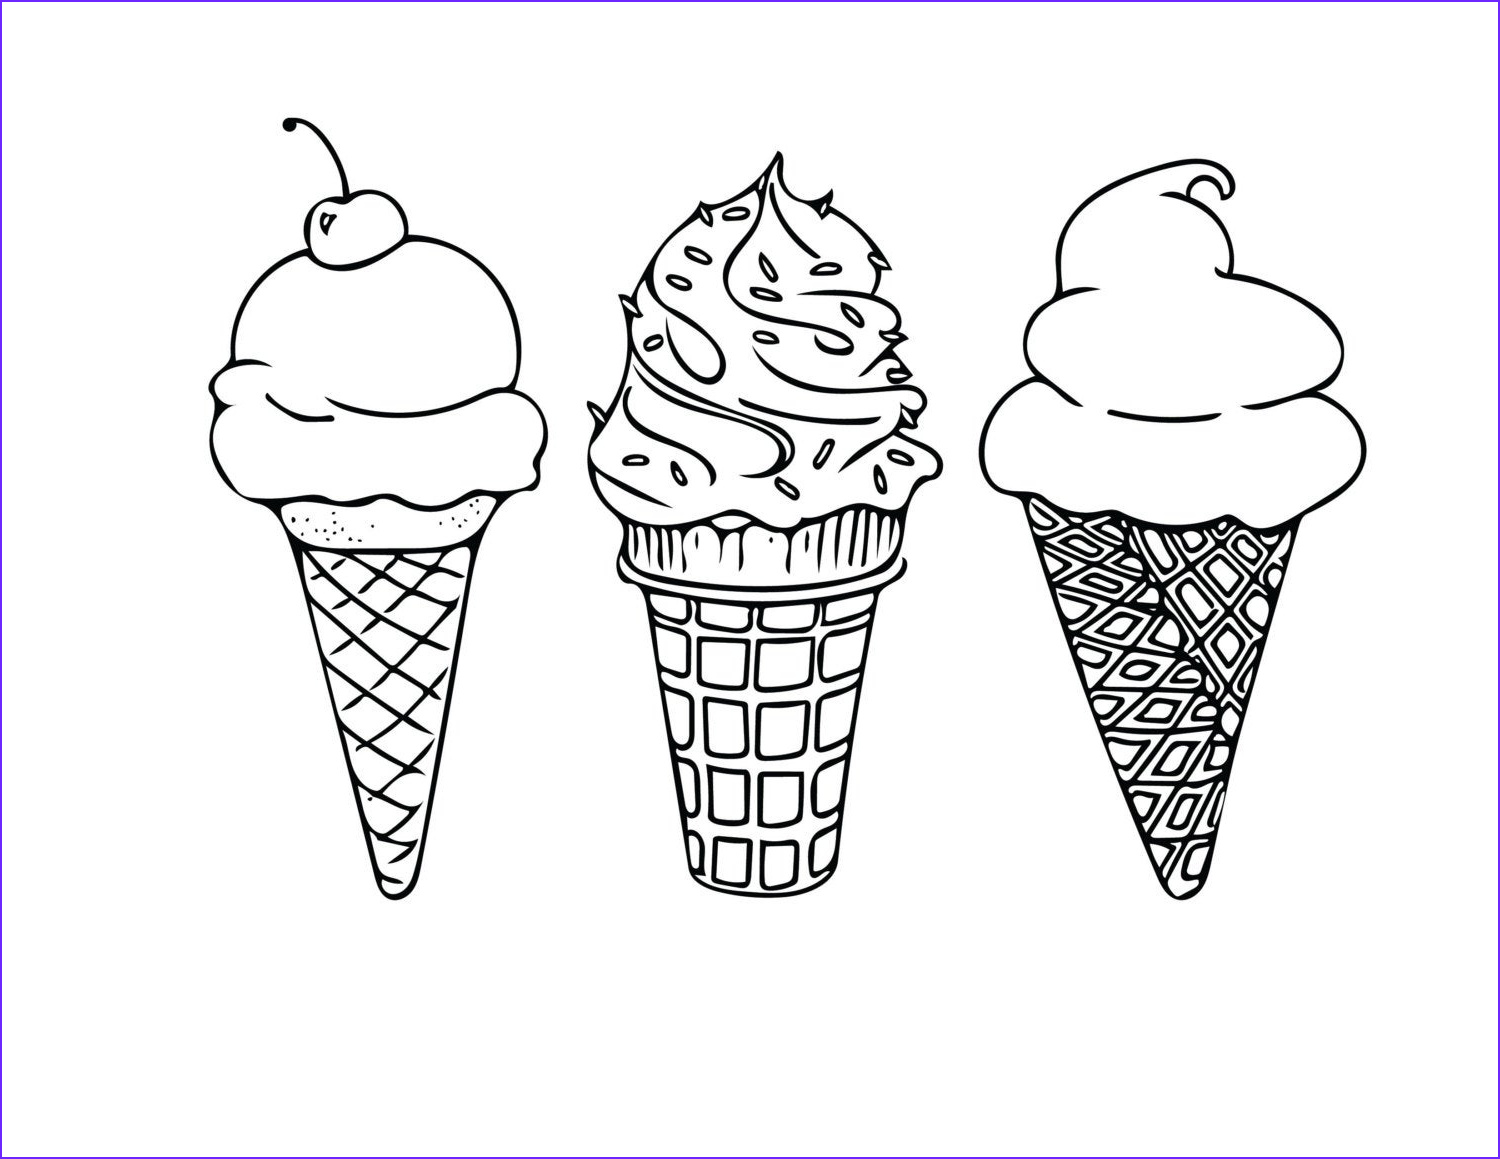 Icecream Cone Coloring Pages Elegant Gallery Printable Coloring Sheet Instant Download Ice Cream Cones